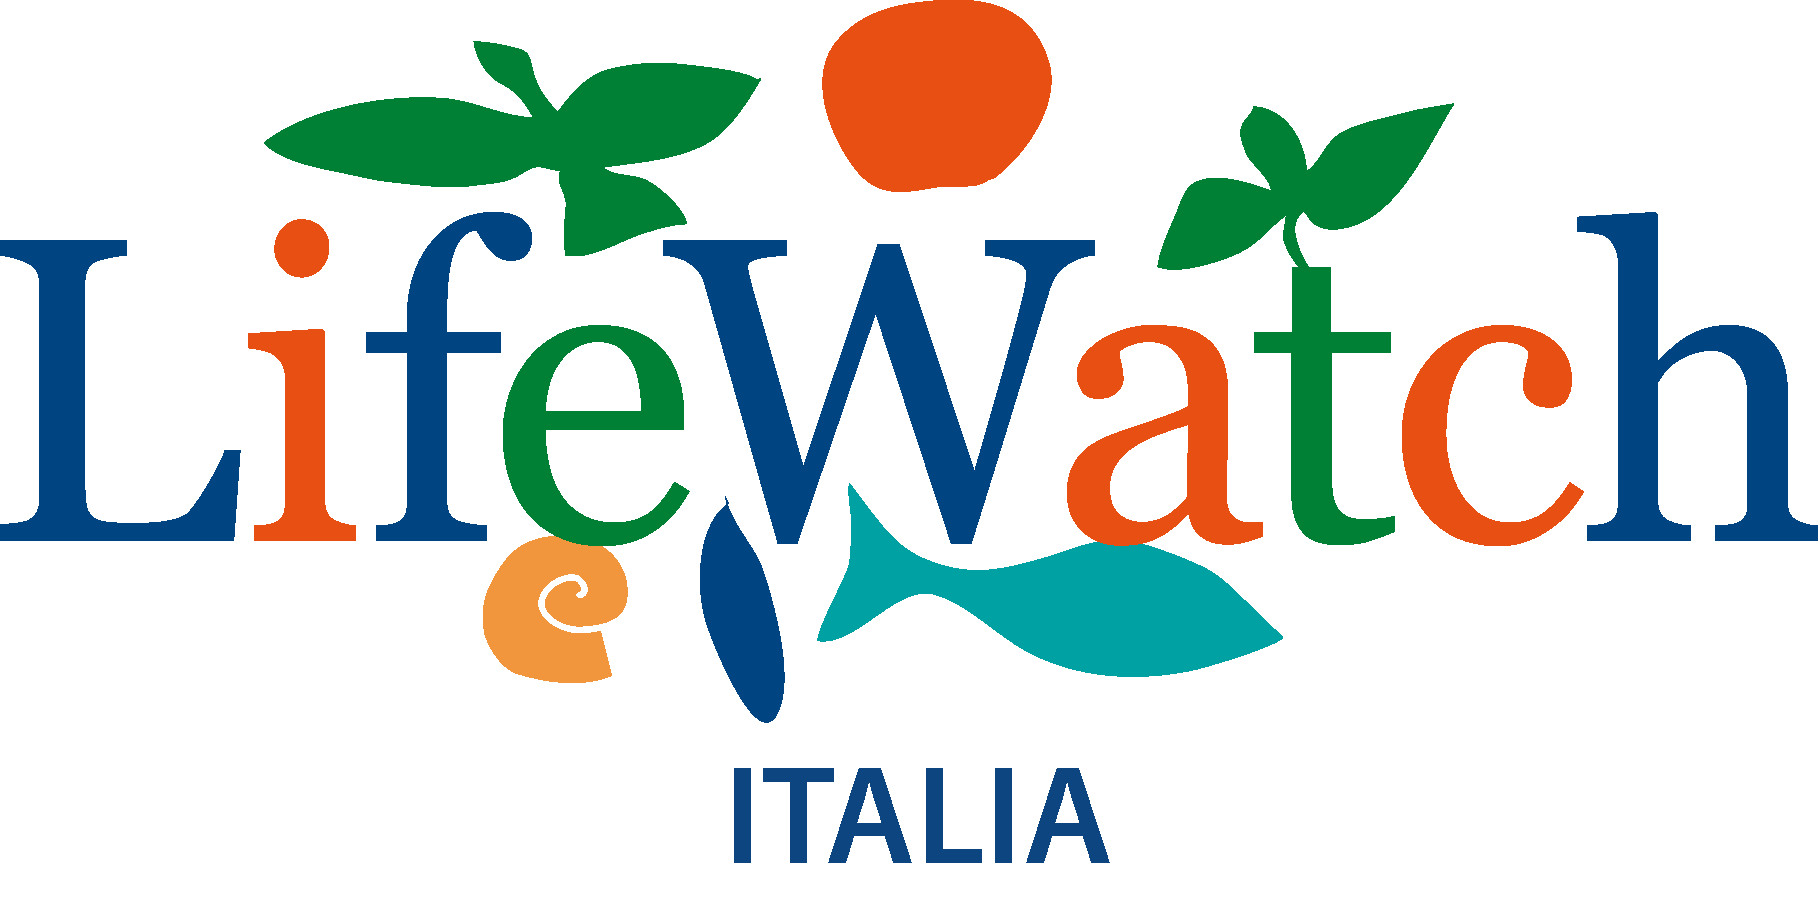 LifeWatch Italia